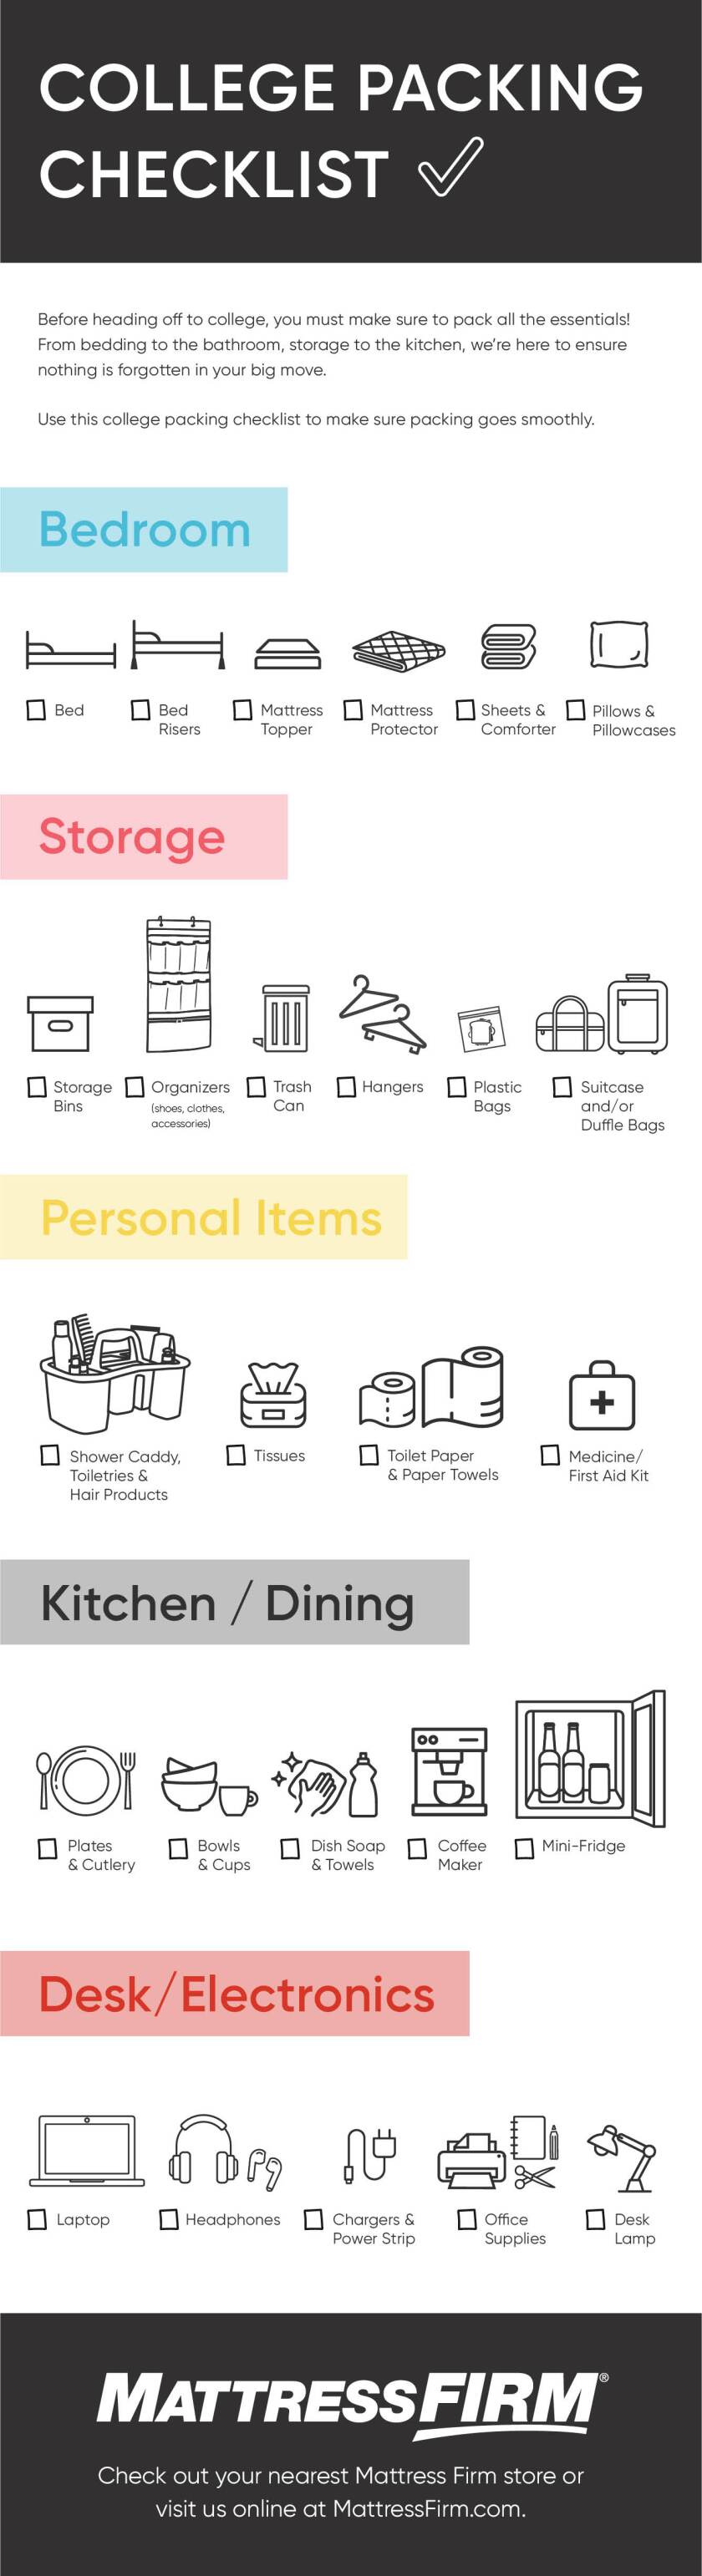 Back to School College Dorm Room Packing Checklist Infographic